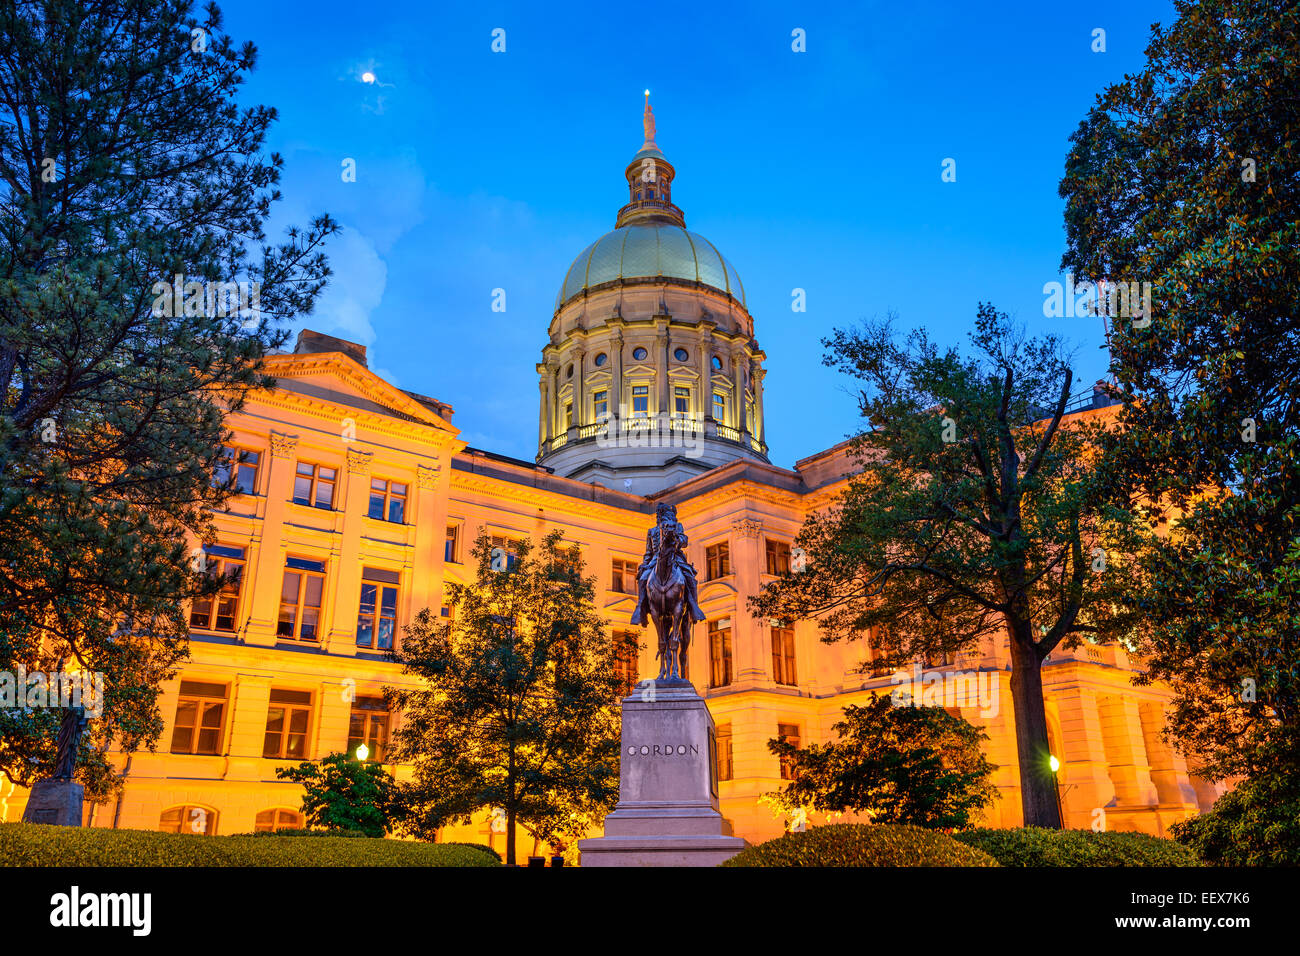 Georgia State Capitol Building in Atlanta, Georgia, USA. - Stock Image